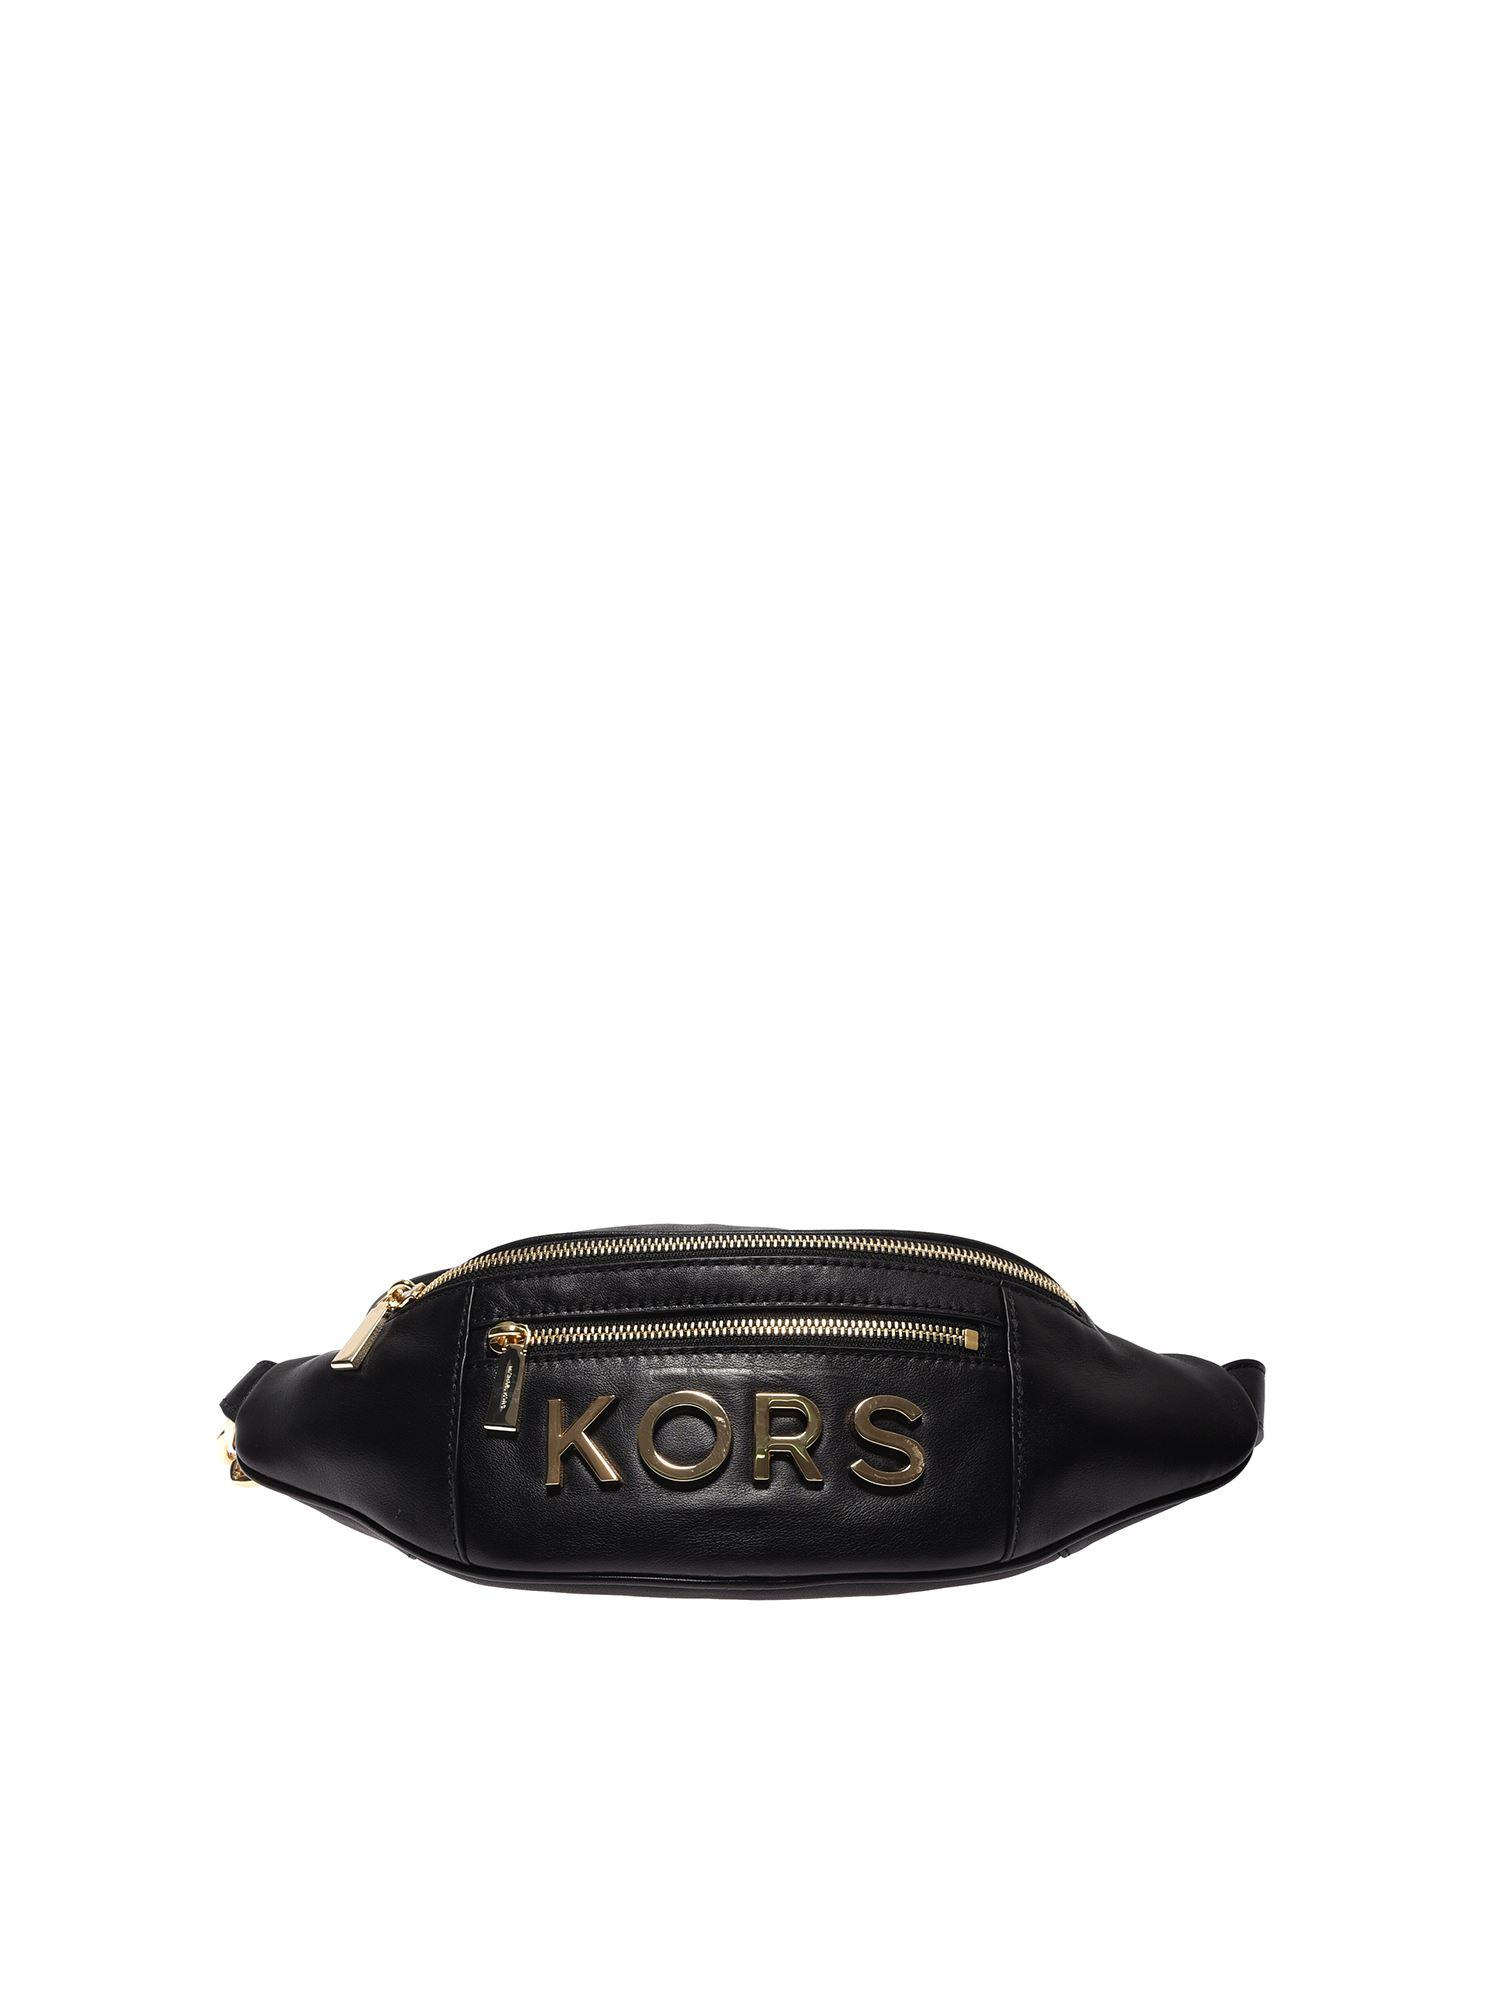 4bfa4186a38f Lyst - Michael Kors Kors Medium Fanny Pack In Black Leather in Black